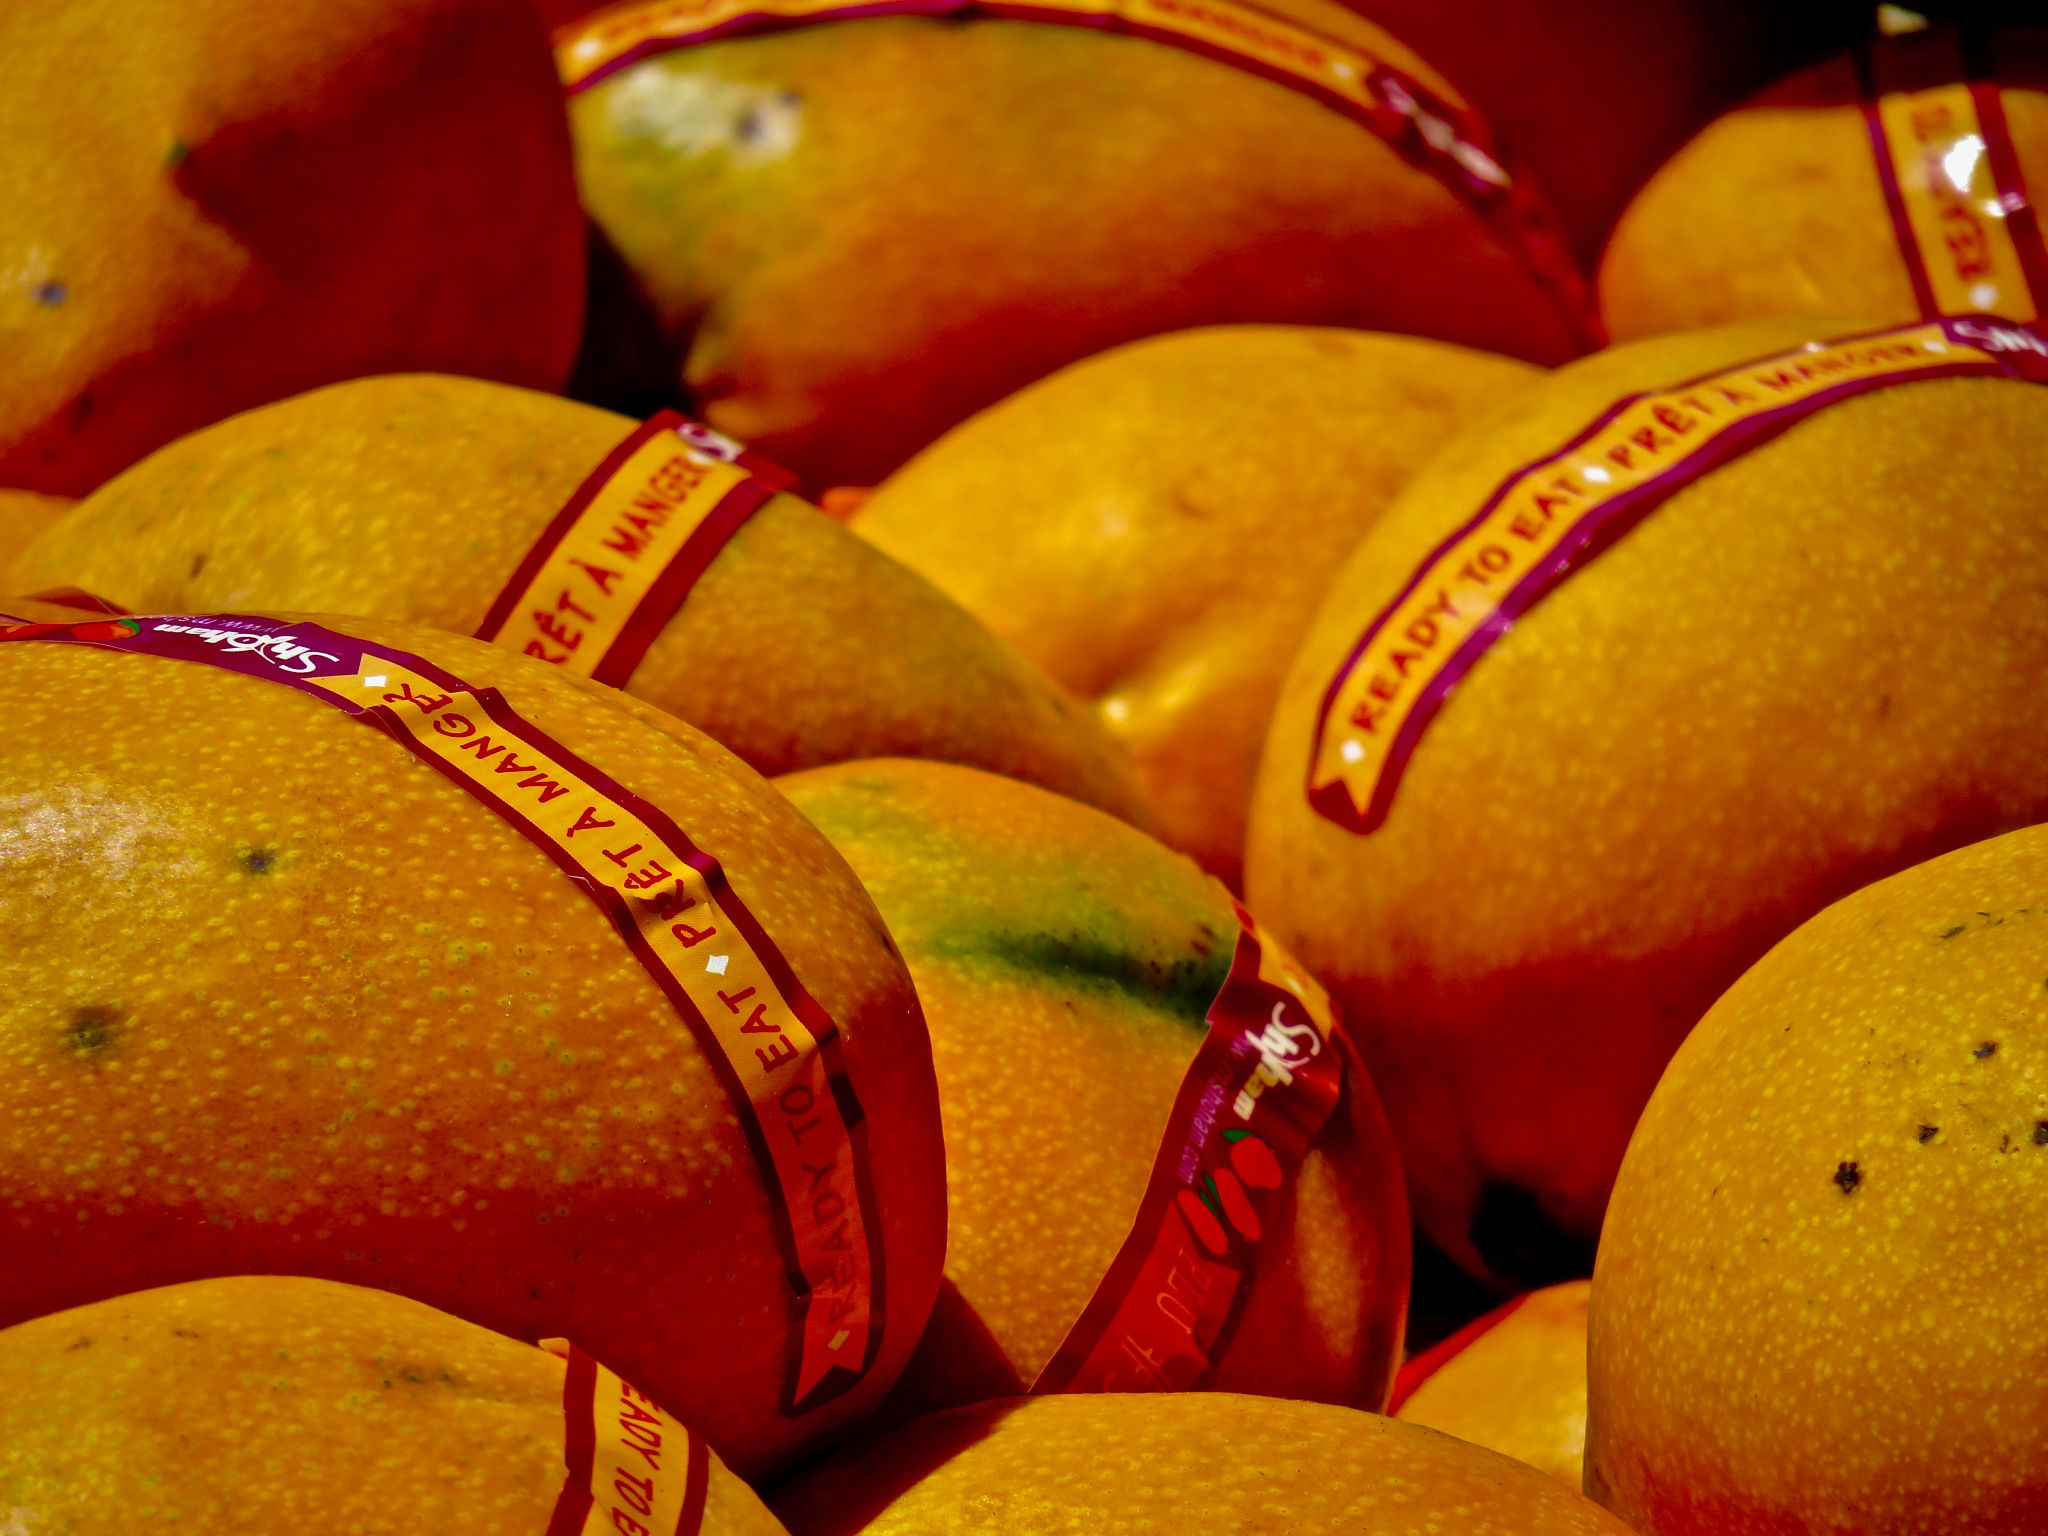 ripe mangos ...... a bite of perfection for those who like !!! by David Devion